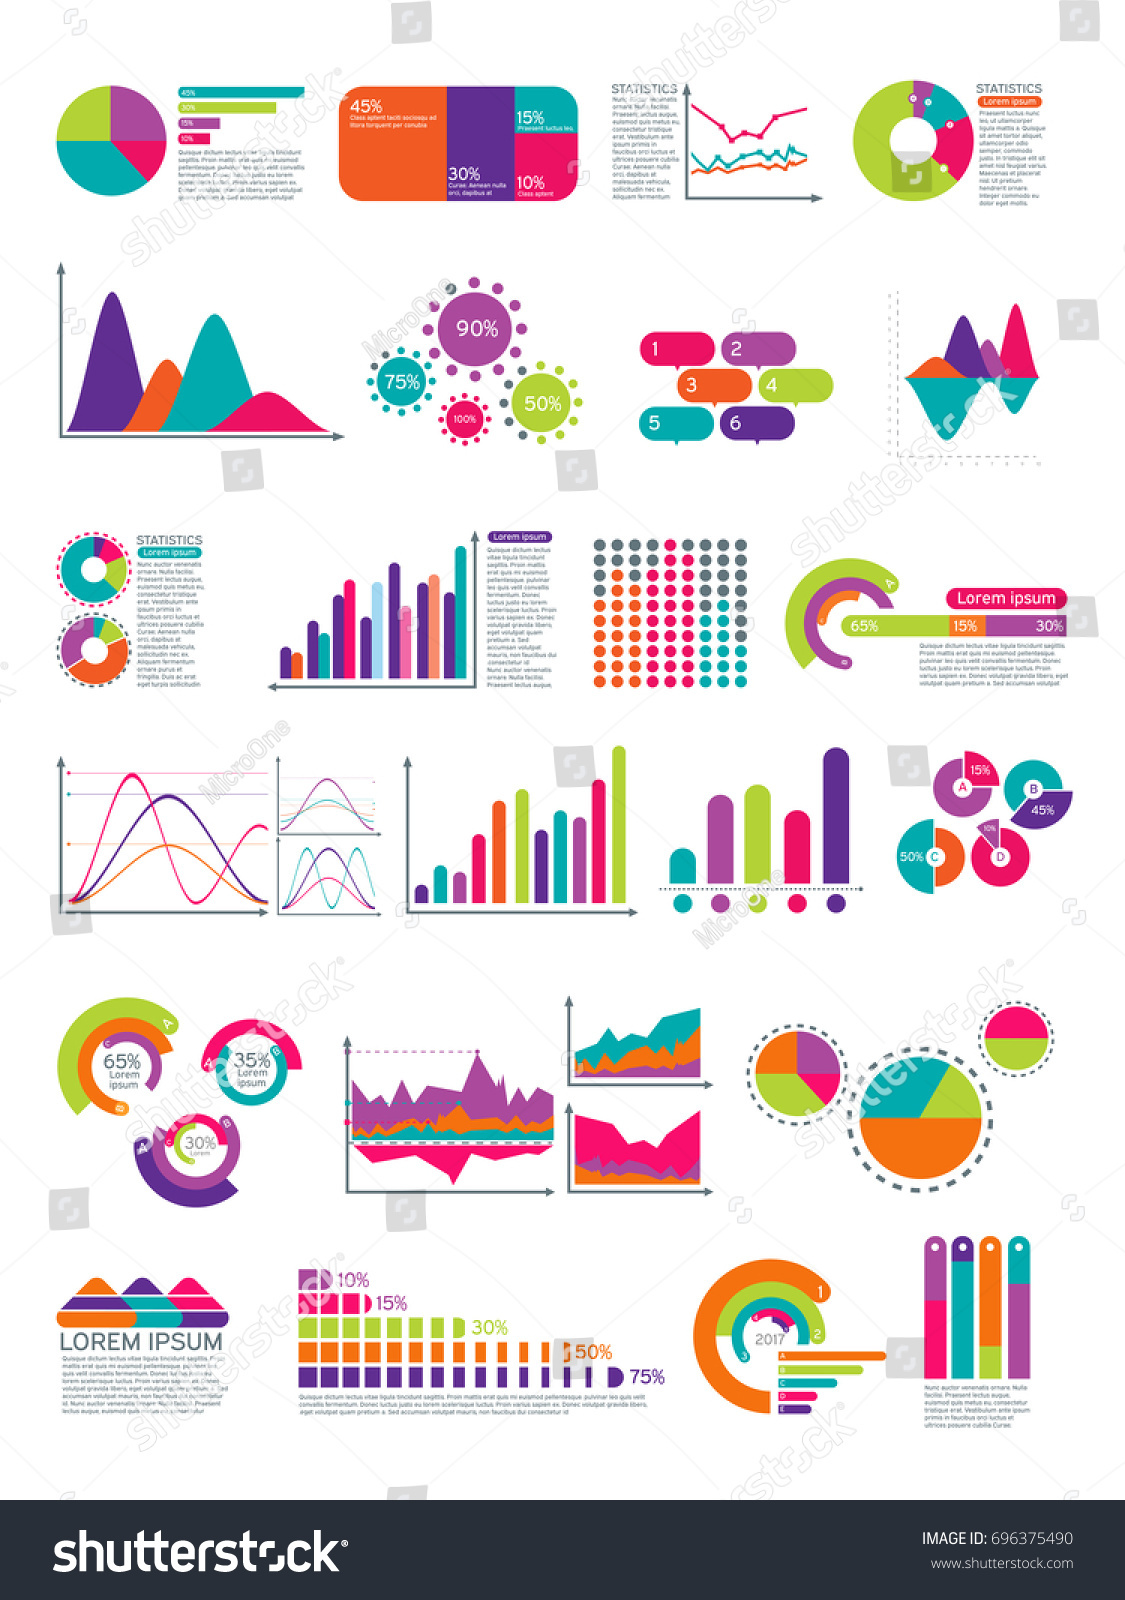 Elements Infographic Flowchart Statistics Diagrams Website Stock